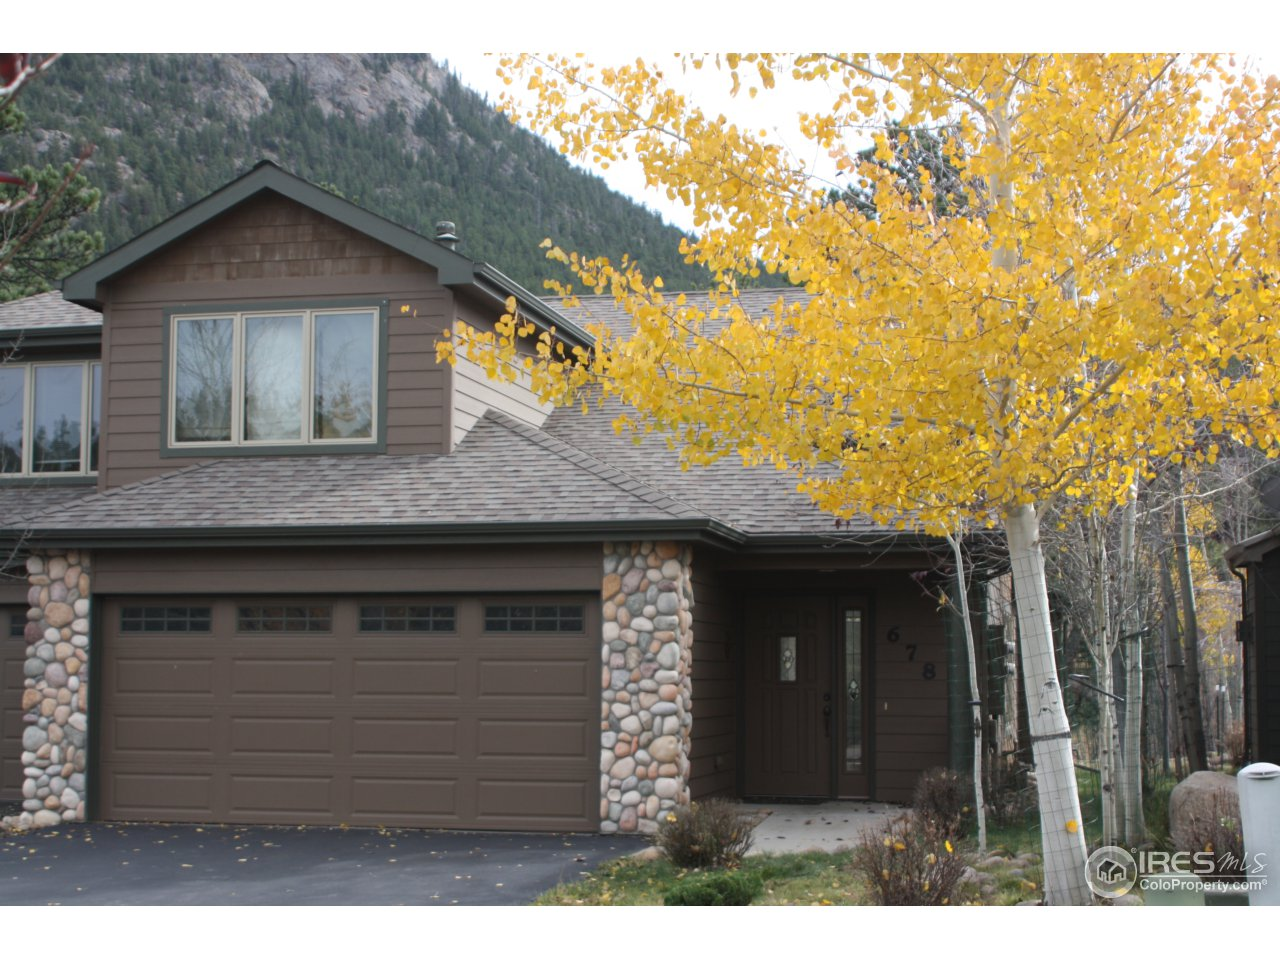 678 Park River Pl, Estes Park CO 80517